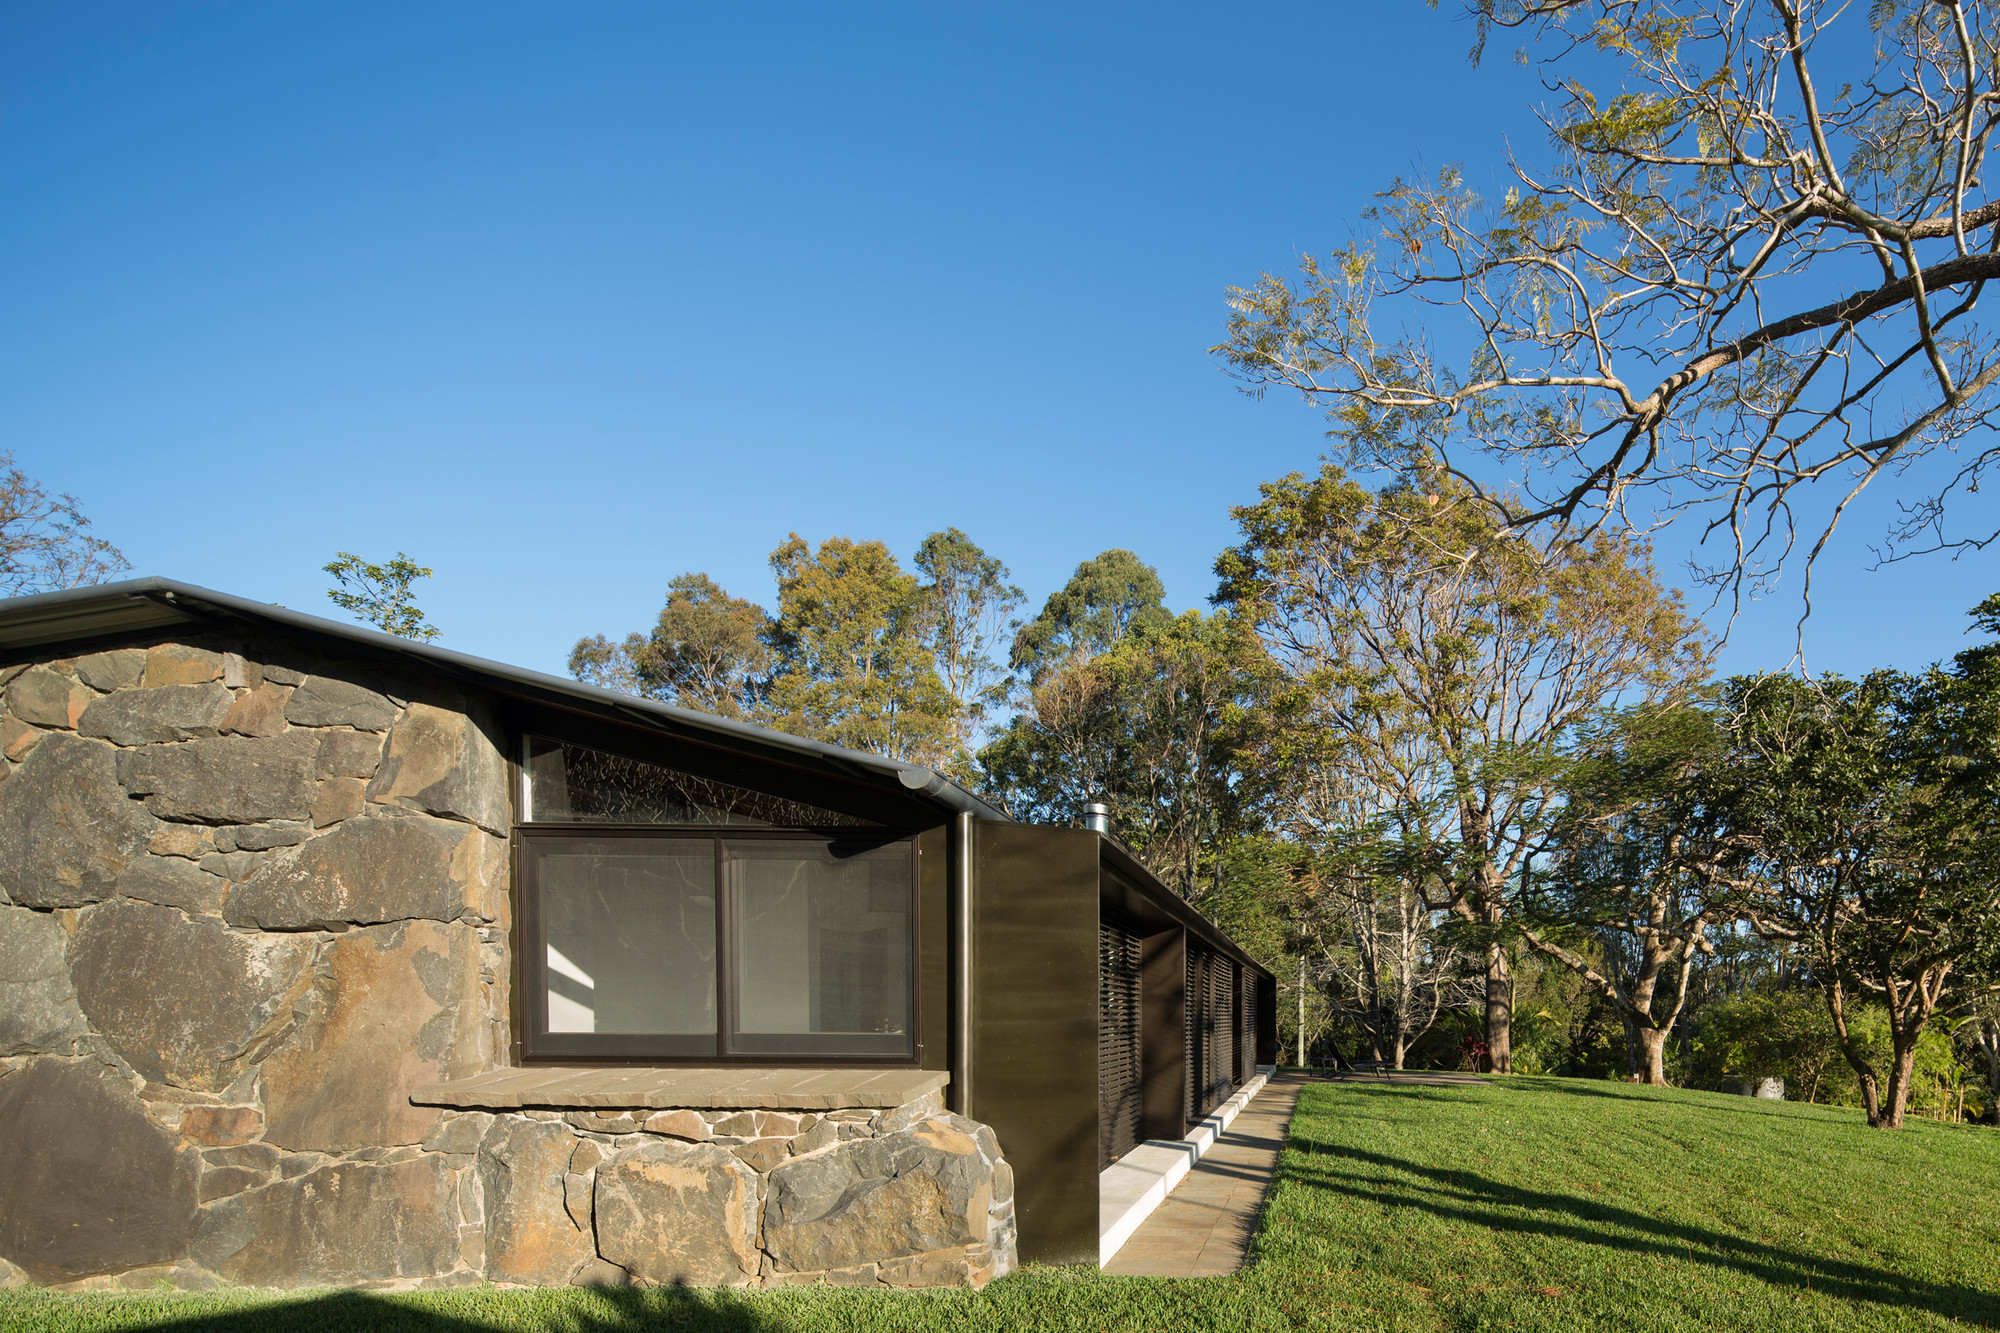 Stone House  / CHROFI, © Brett Boardman